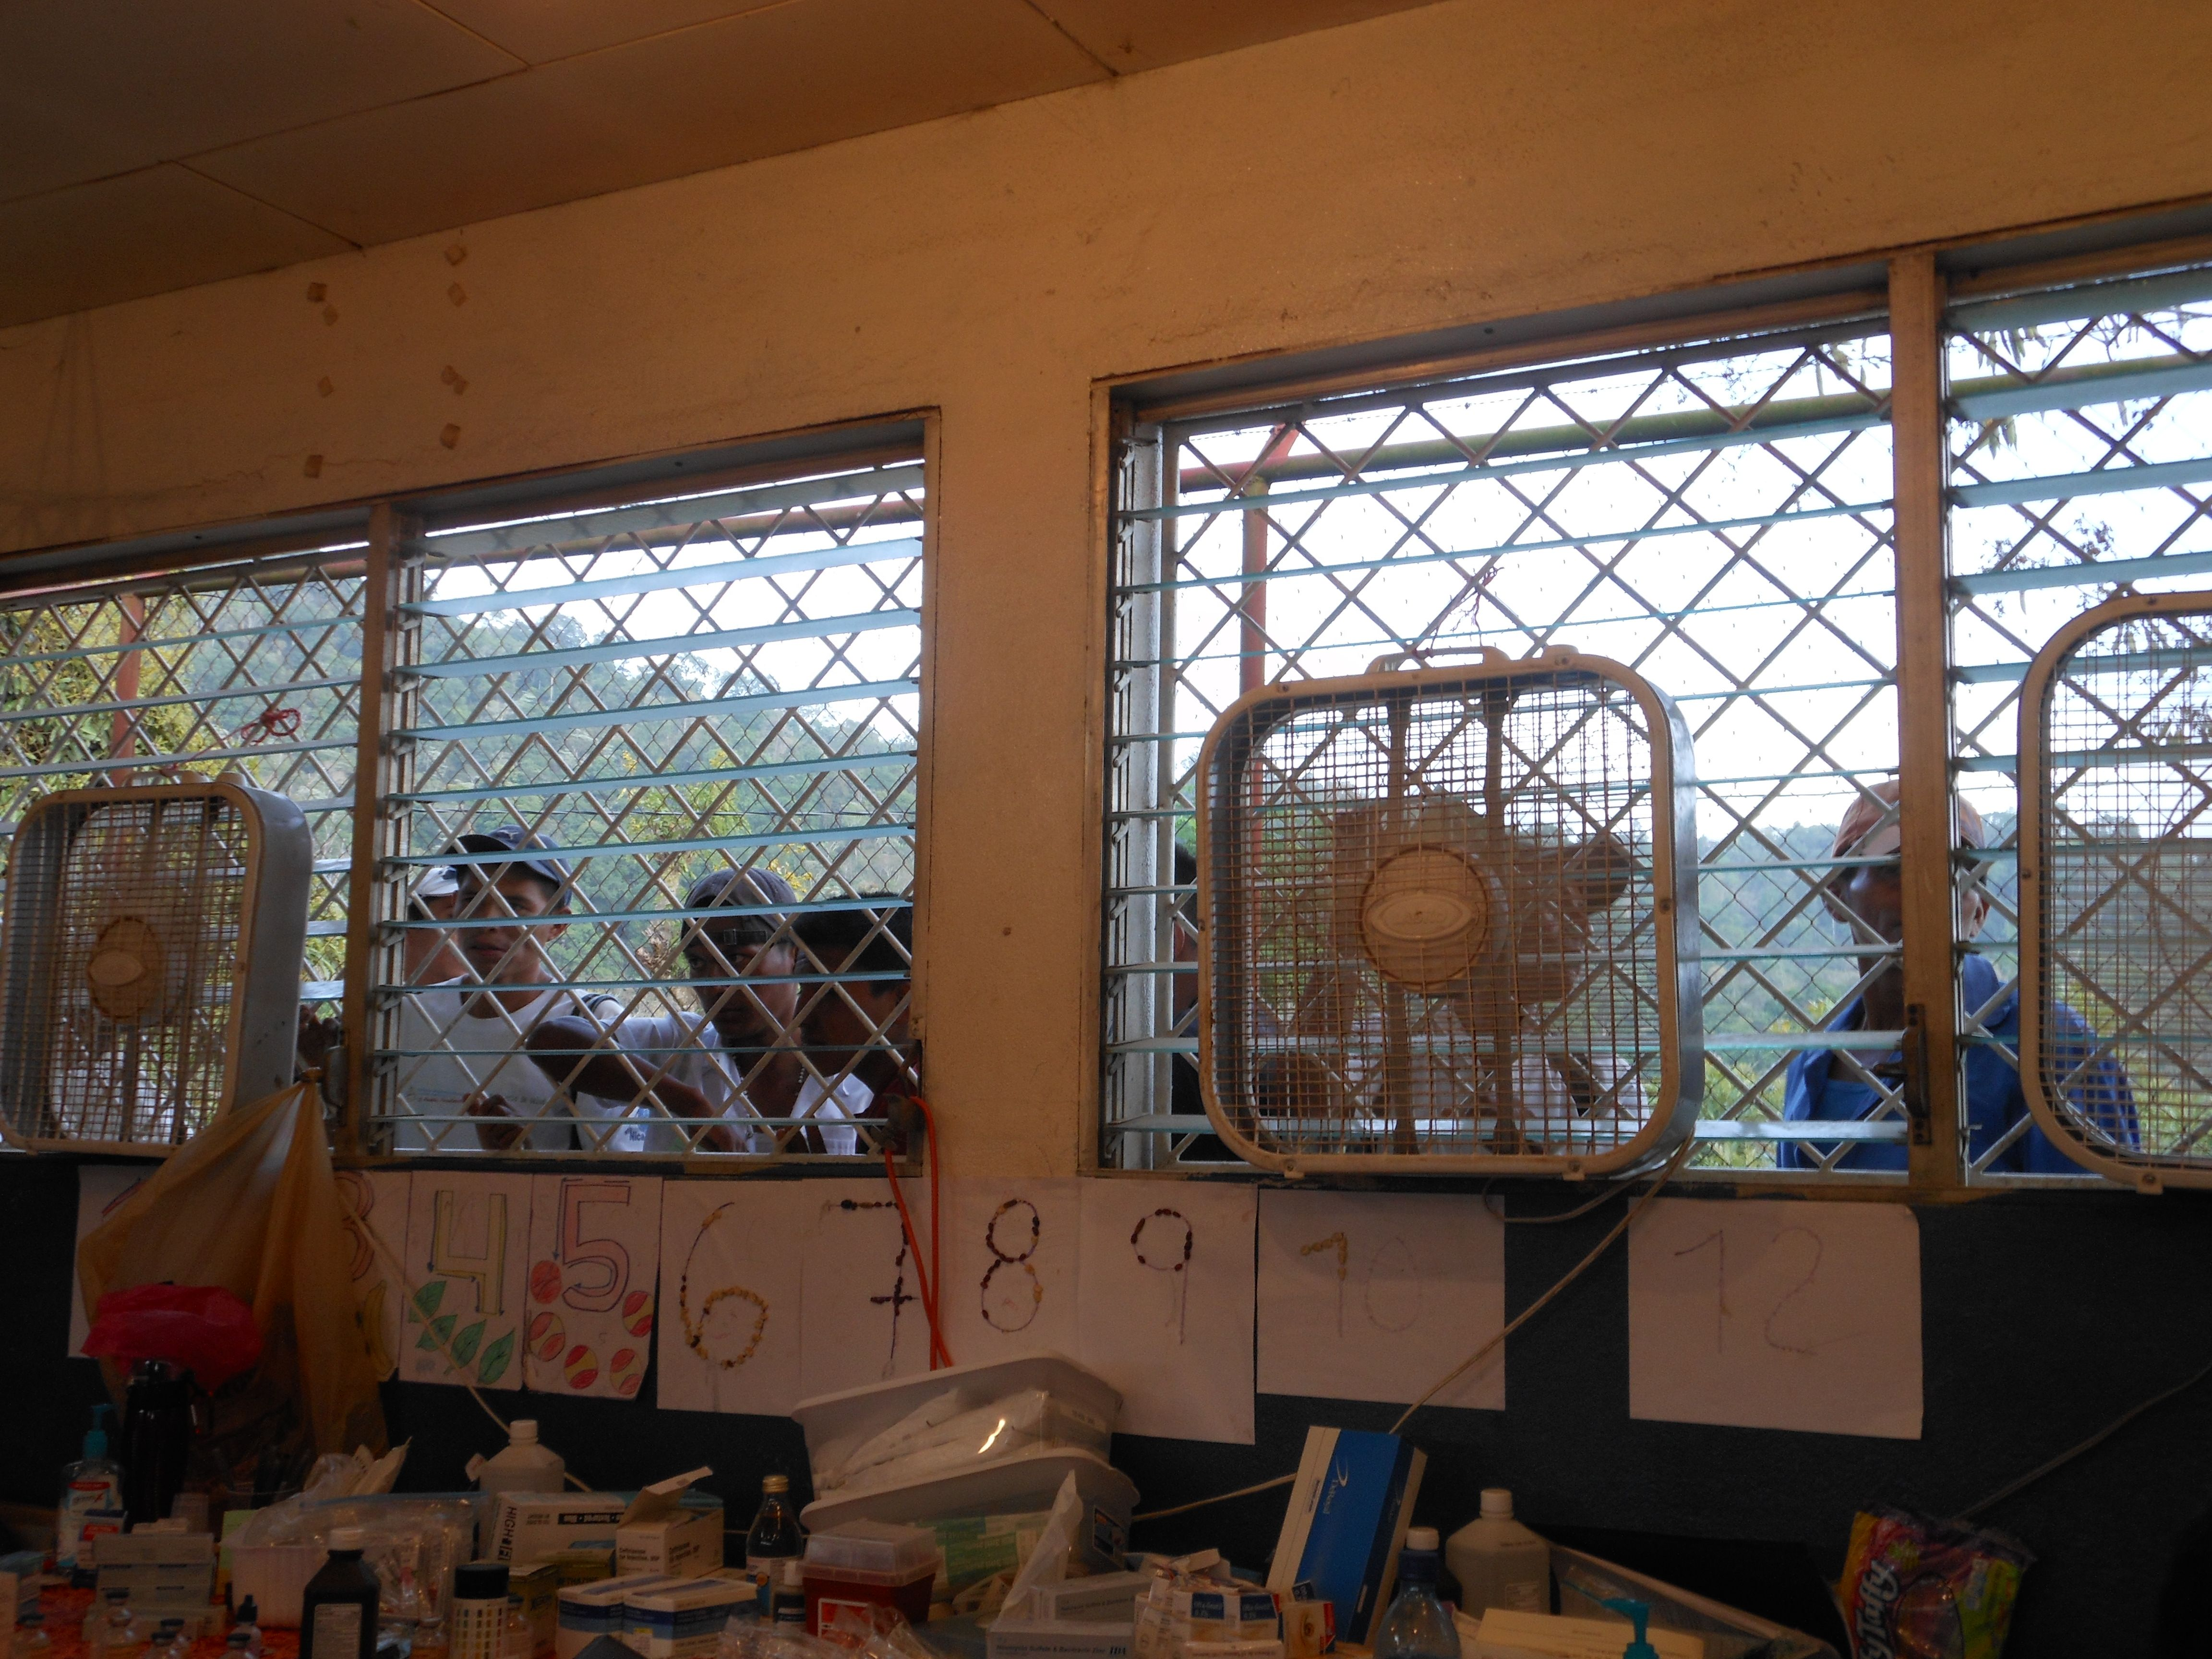 Nicaragua 2014, Our classroom turned clinic